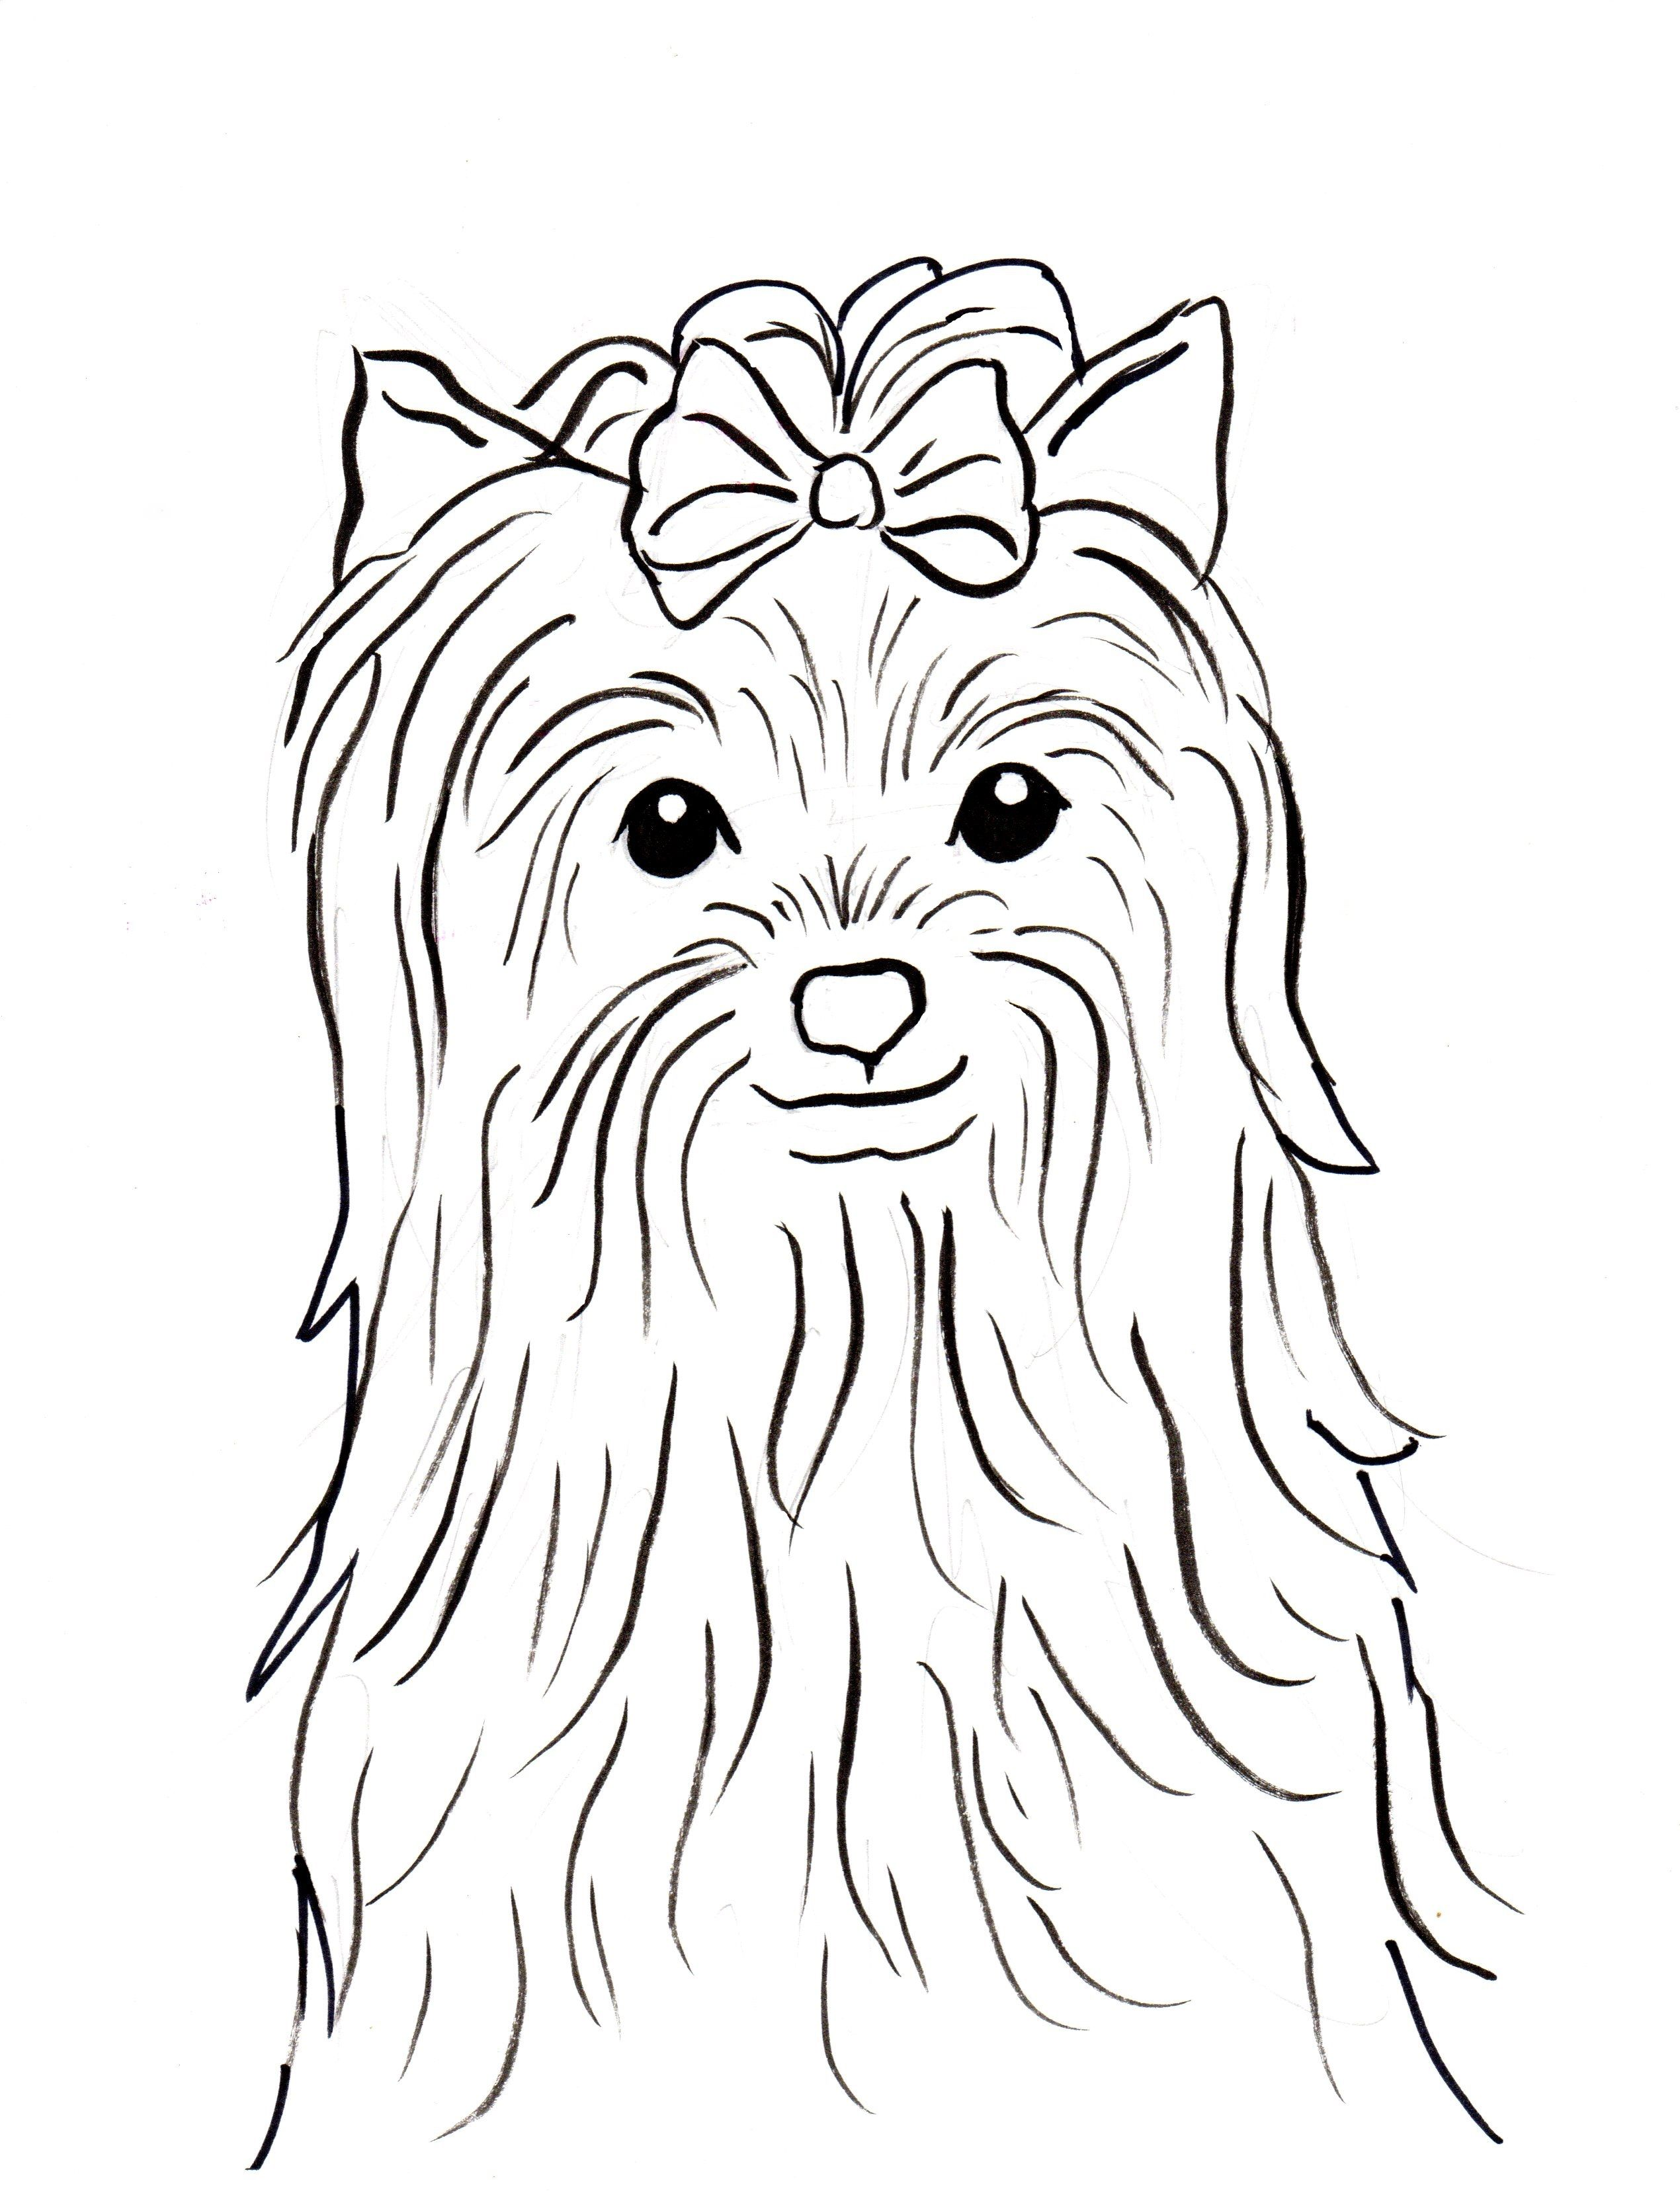 Yorkshire Terrier Coloring Page Samantha Bell Sketch Coloring Page Yorkshire Terrier Terrier Yorkshire